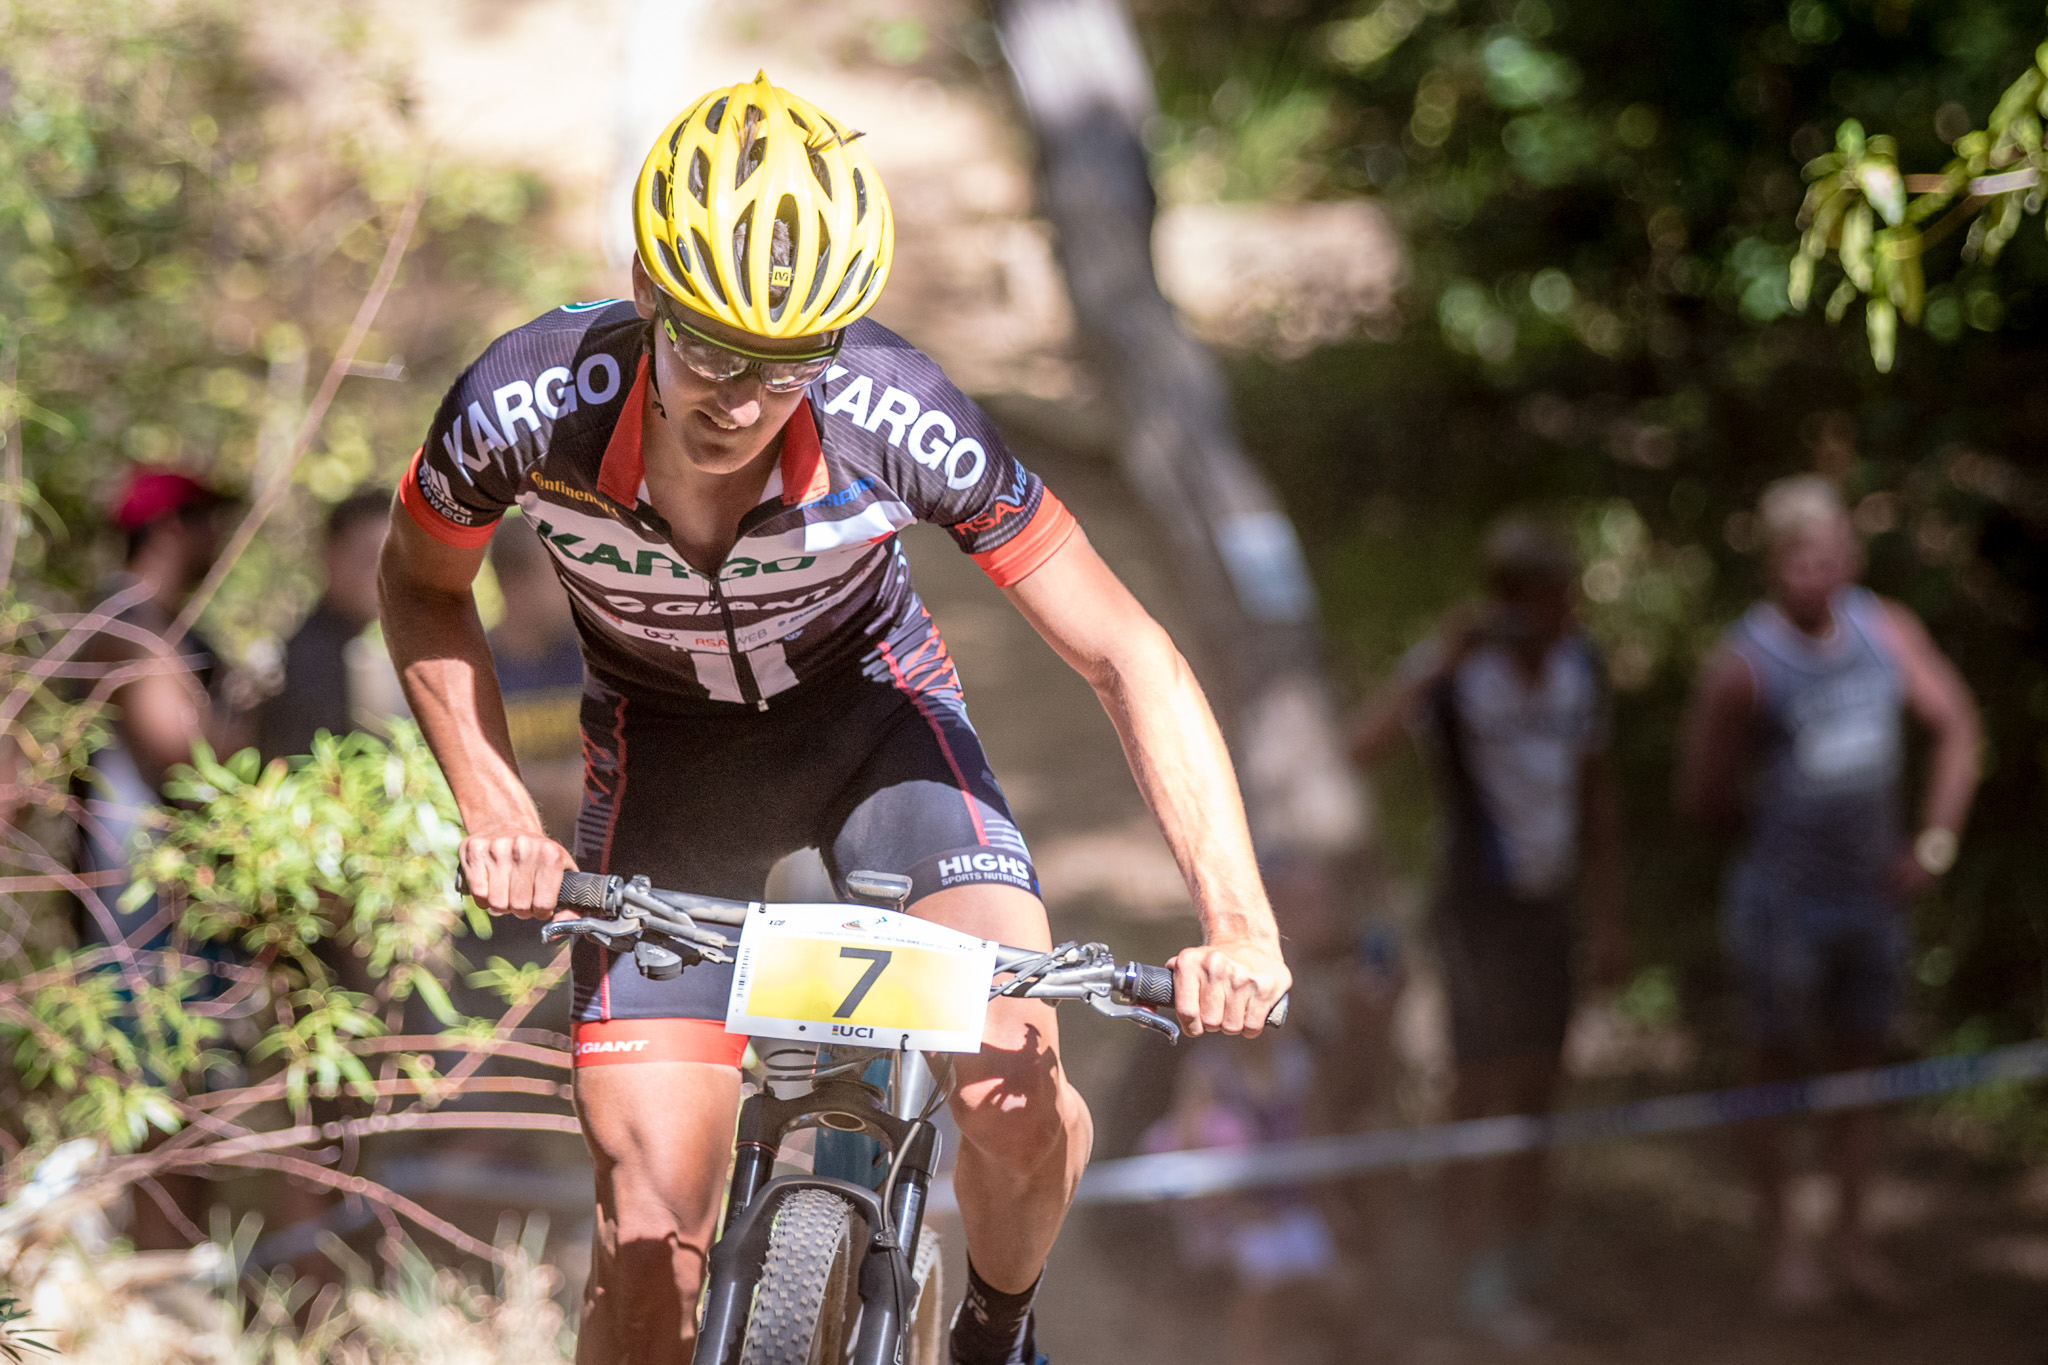 Kargo Pro MTB Team's Alan Hatherly currently leads the Pro-Elite Men's category by just 15 points, and hopes to retain the top spot at the third round of the Stihl 2016 SA XCO Cup Series, which takes place at Wolwespruit Bike Park in the City of Tshwane on Saturday 26 March. Photo: Chris Hitchcock.